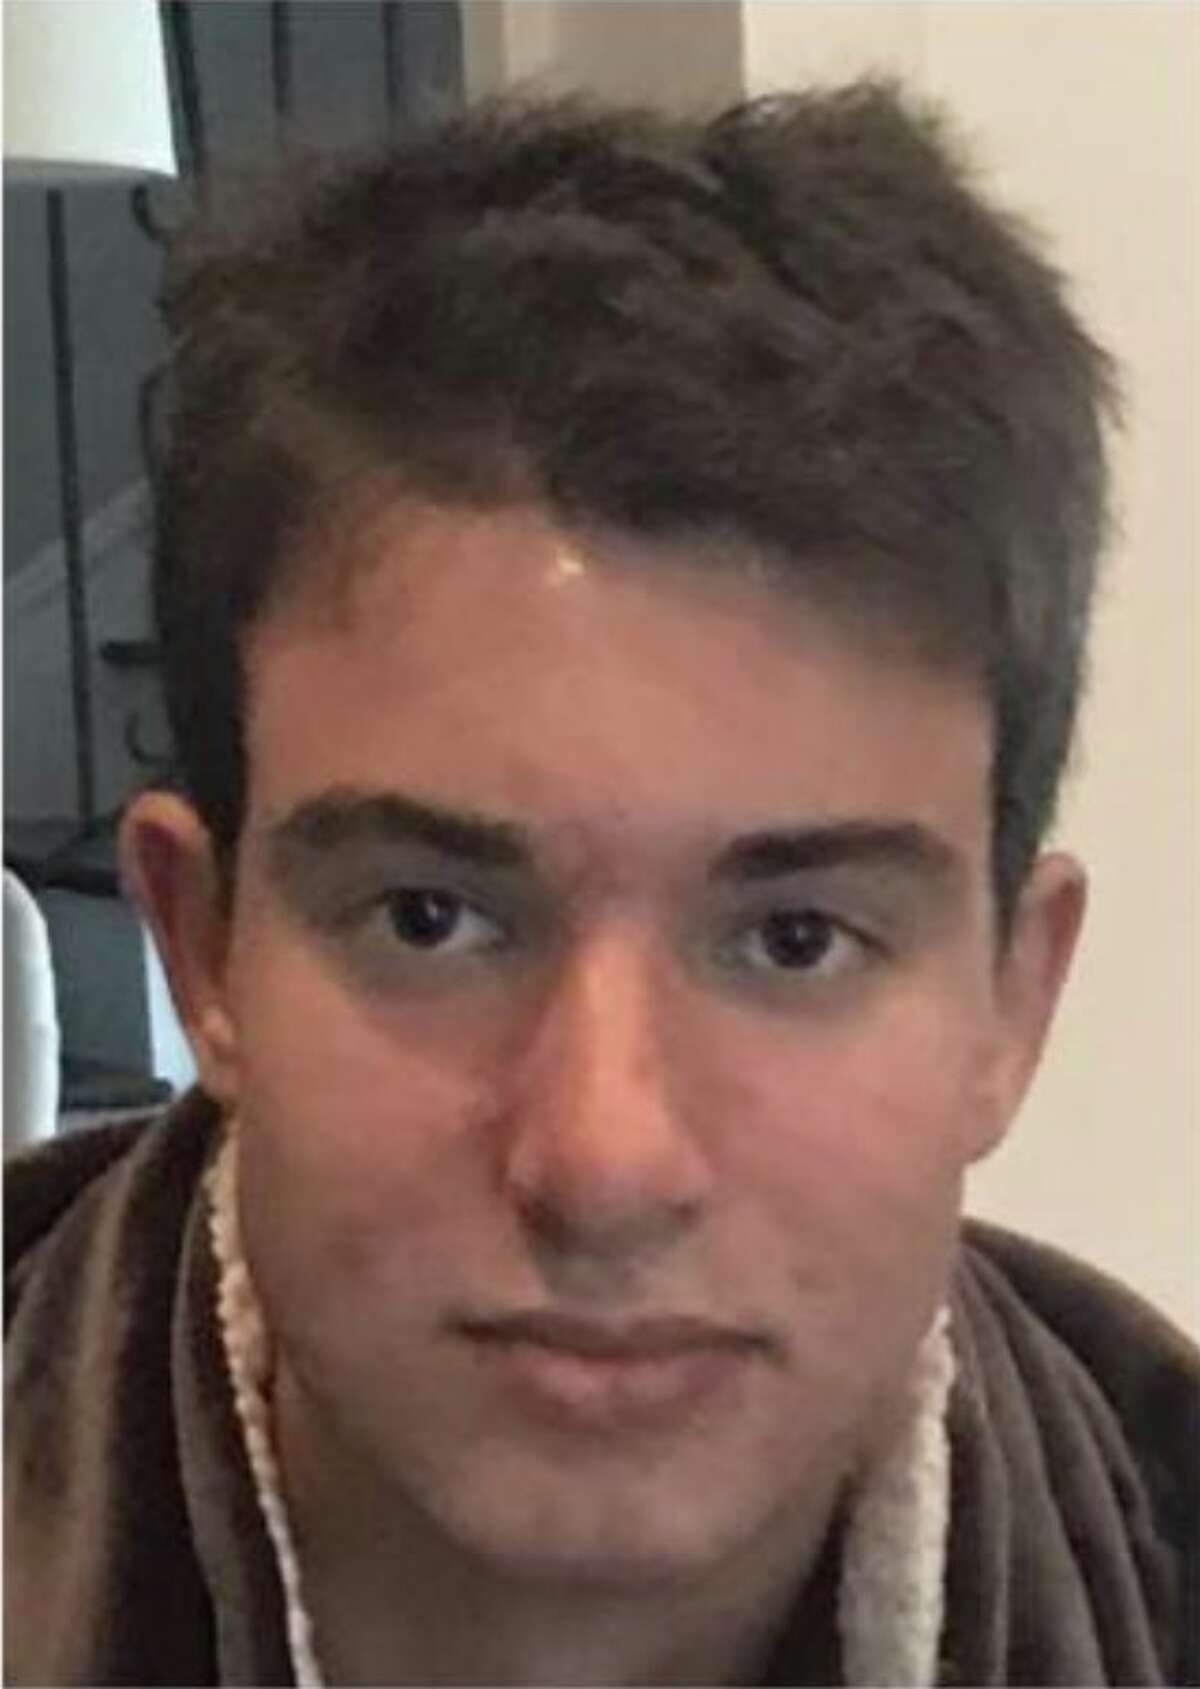 Jared Chapellat, 16, was last seen around 8:45 p.m. Sunday, Dec. 2, 2018, by family members in the 1400 block of Sue Barnett Drive in the Heights neighborhood. Anyone with information about Chapellat's whereabouts is urged to call the Houston Police Department Missing Persons Unit at 832-394-1840.